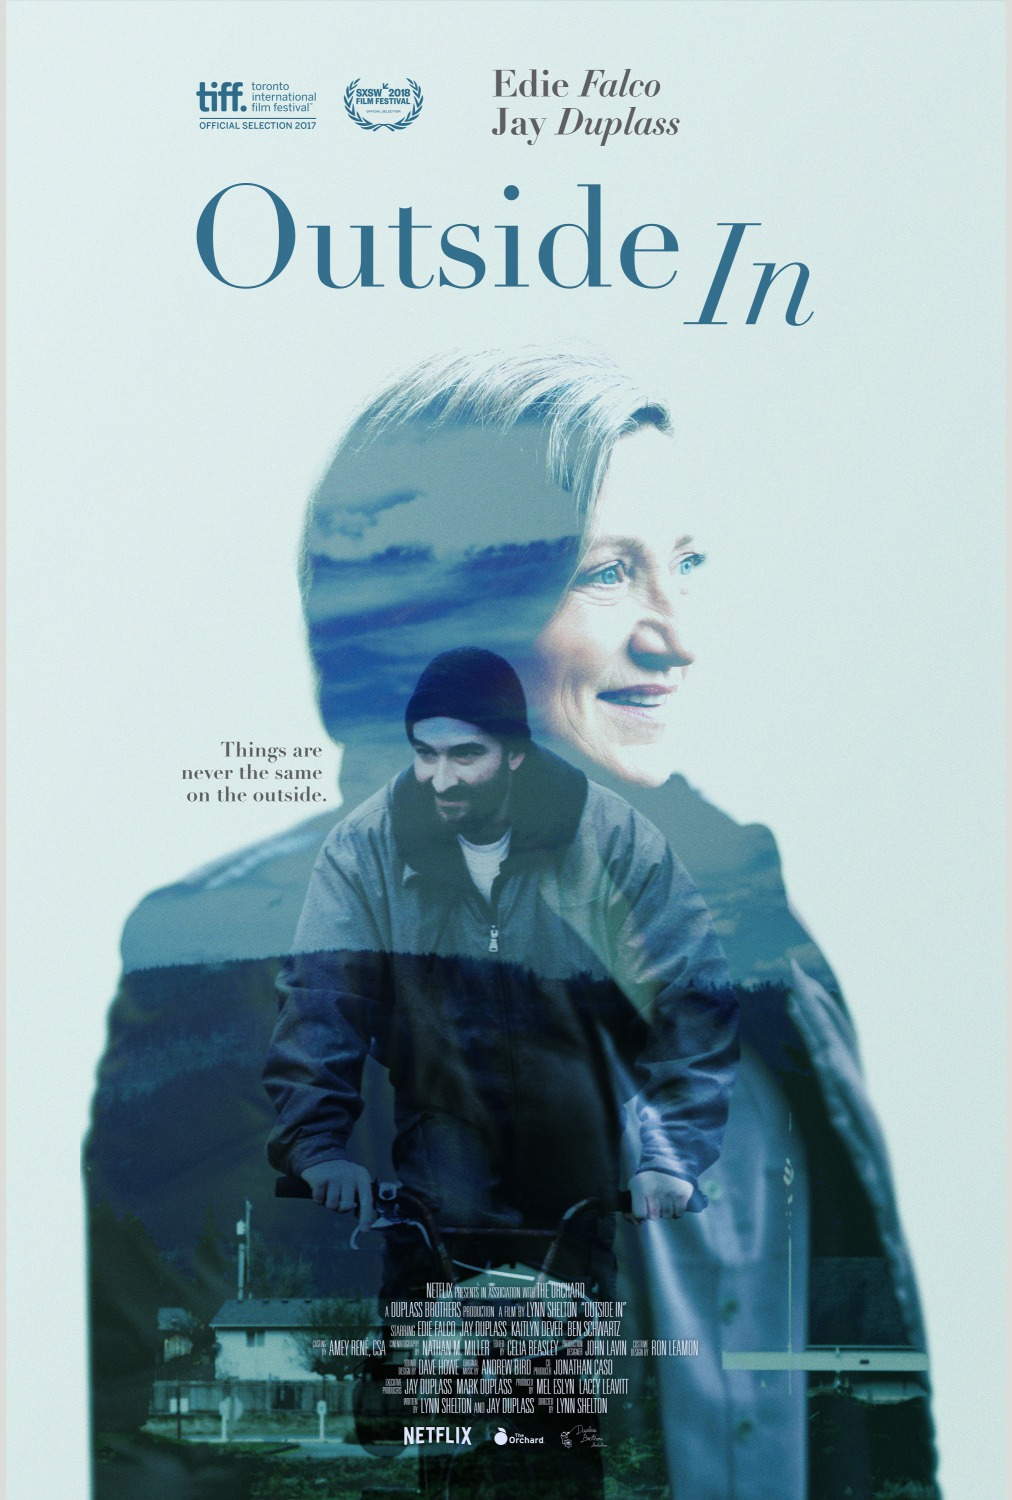 21 outside in movie poster